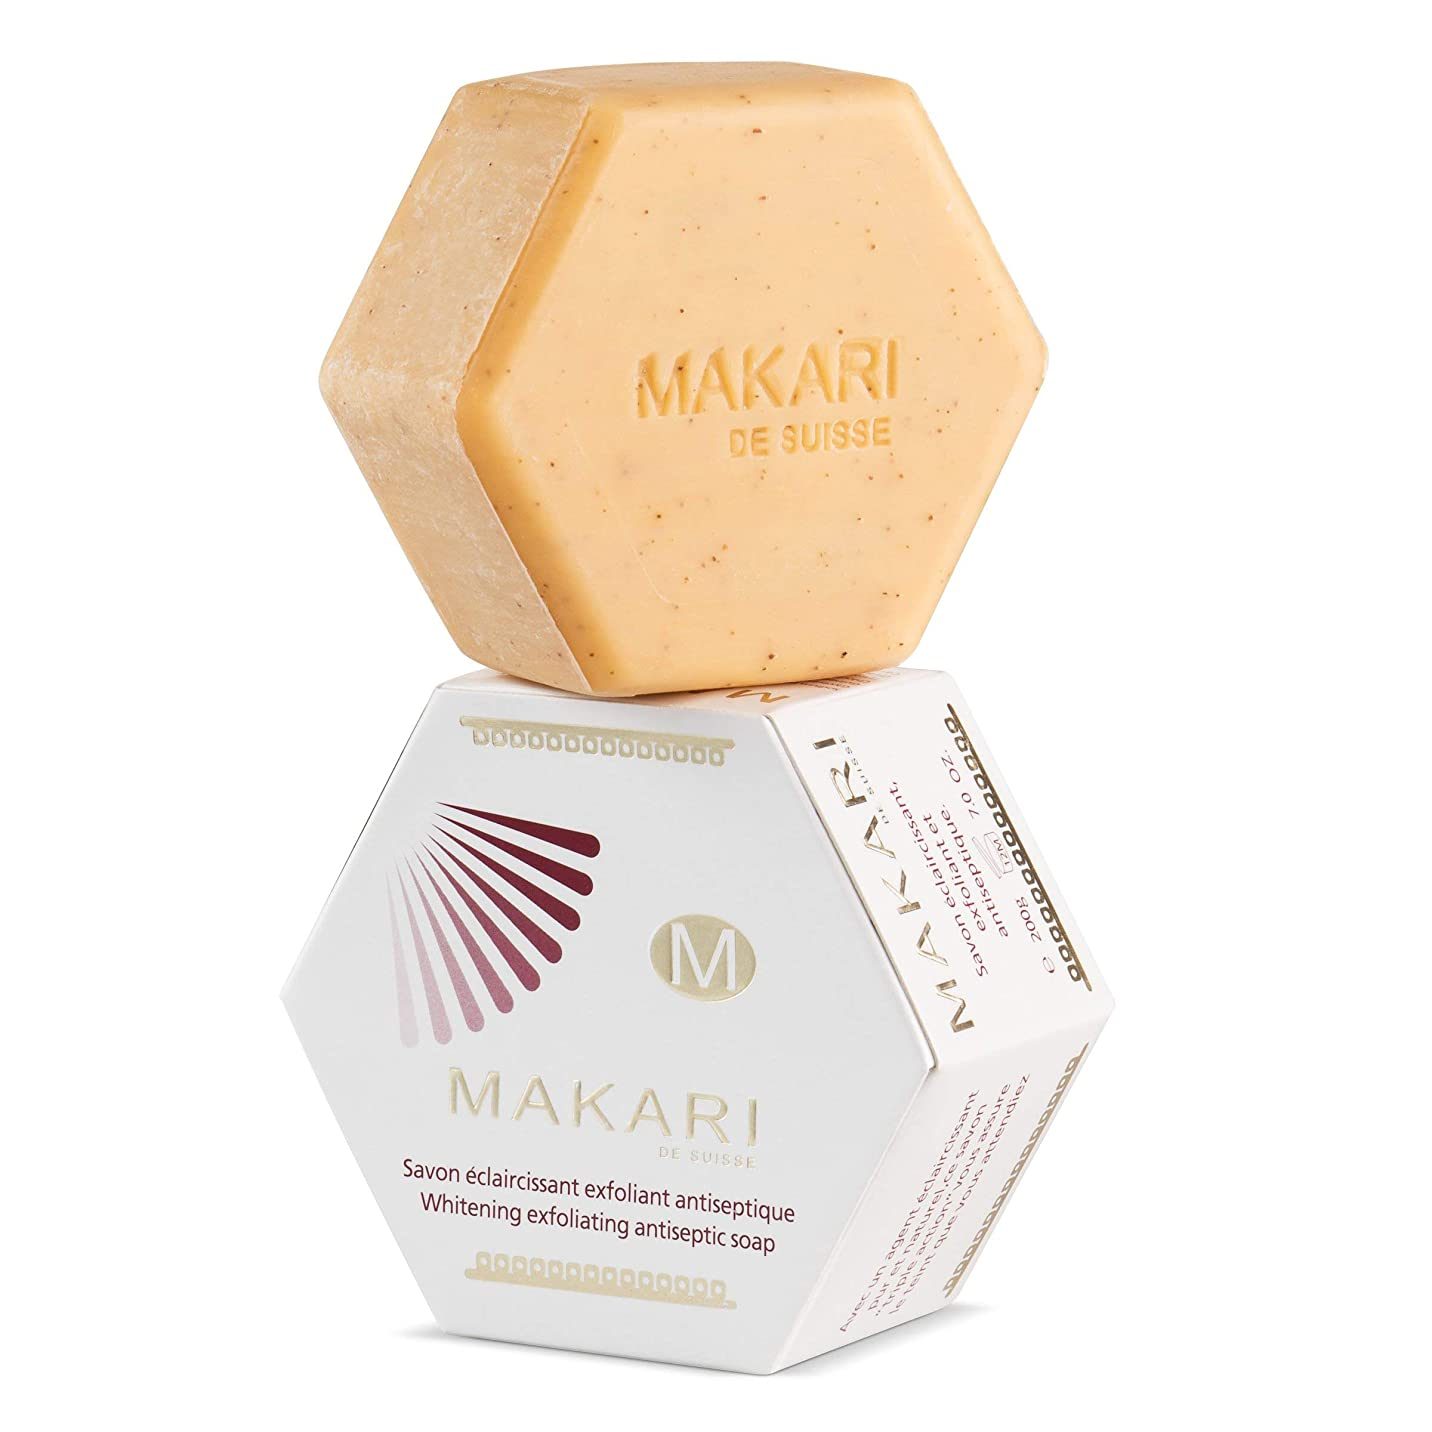 防腐剤寺院フィクションMAKARI Classic Whitening Exfoliating Antiseptic Soap 7 Oz.– Cleansing & Moisturizing Bar Soap For Face & Body – Brightens Skin & Fades Dark Spots, Acne Scars, Blemishes & Hyperpigmentation